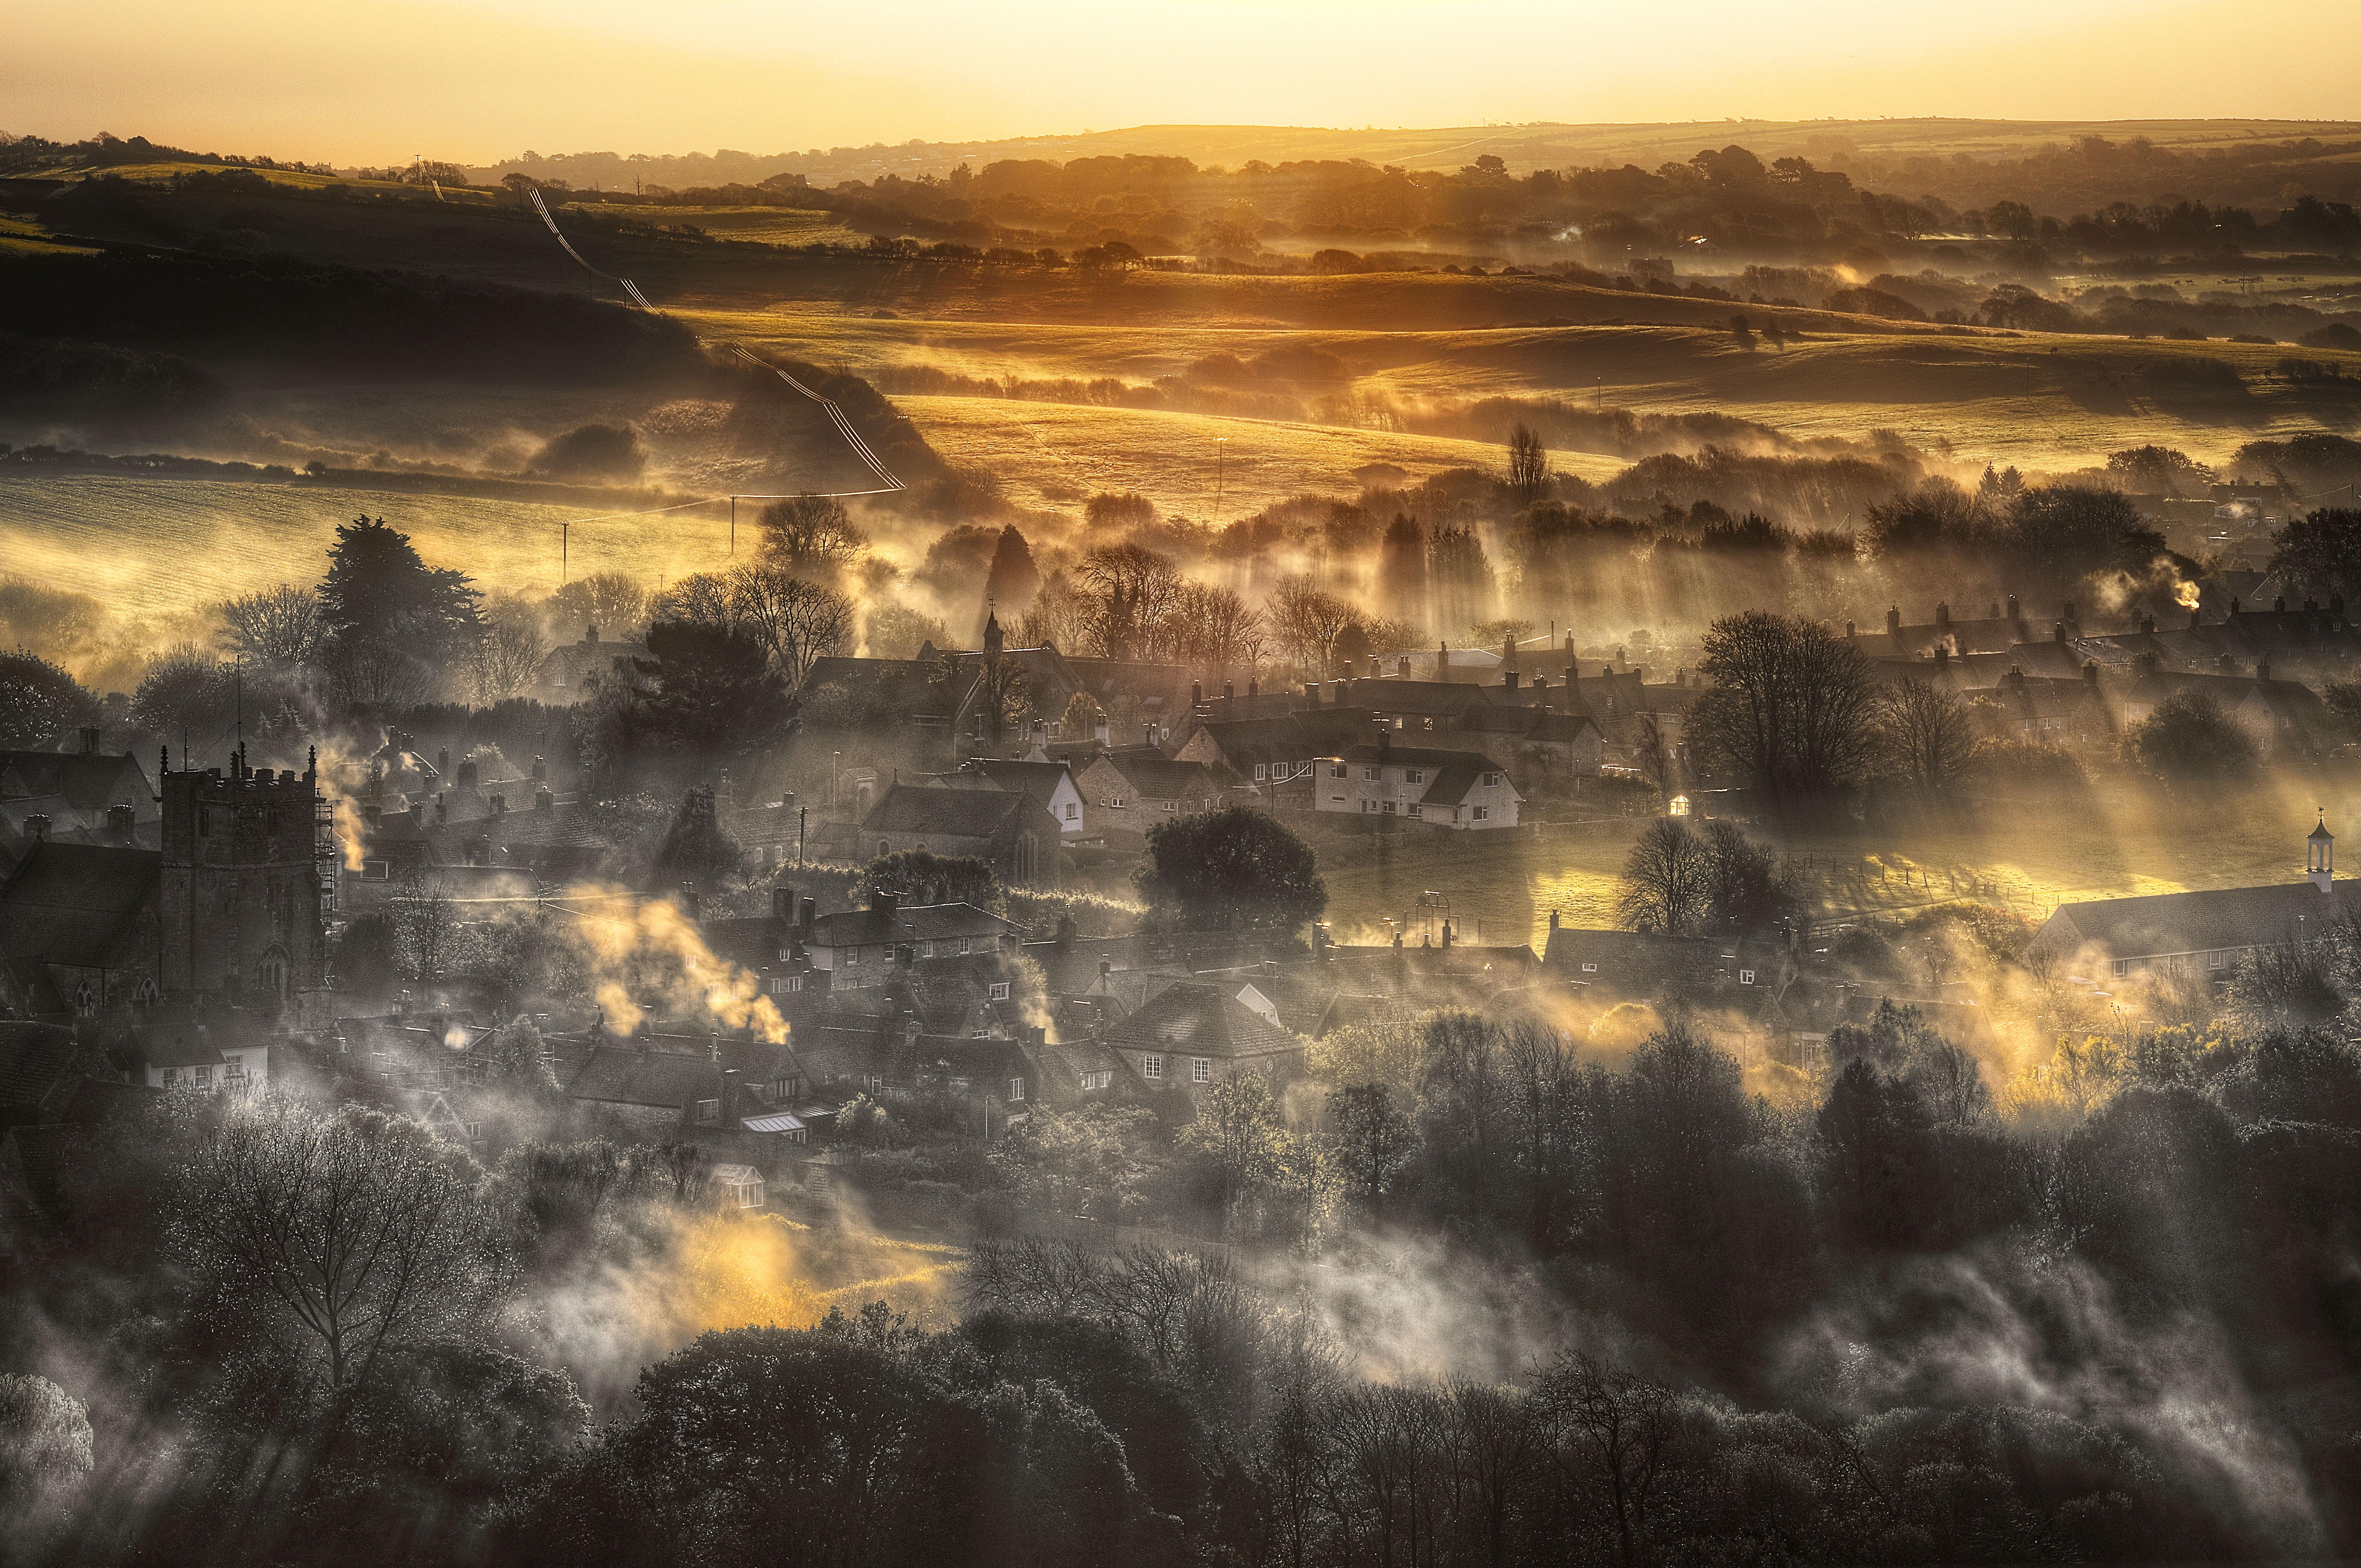 Morning Falls in Shards Over a Smoking Corfe